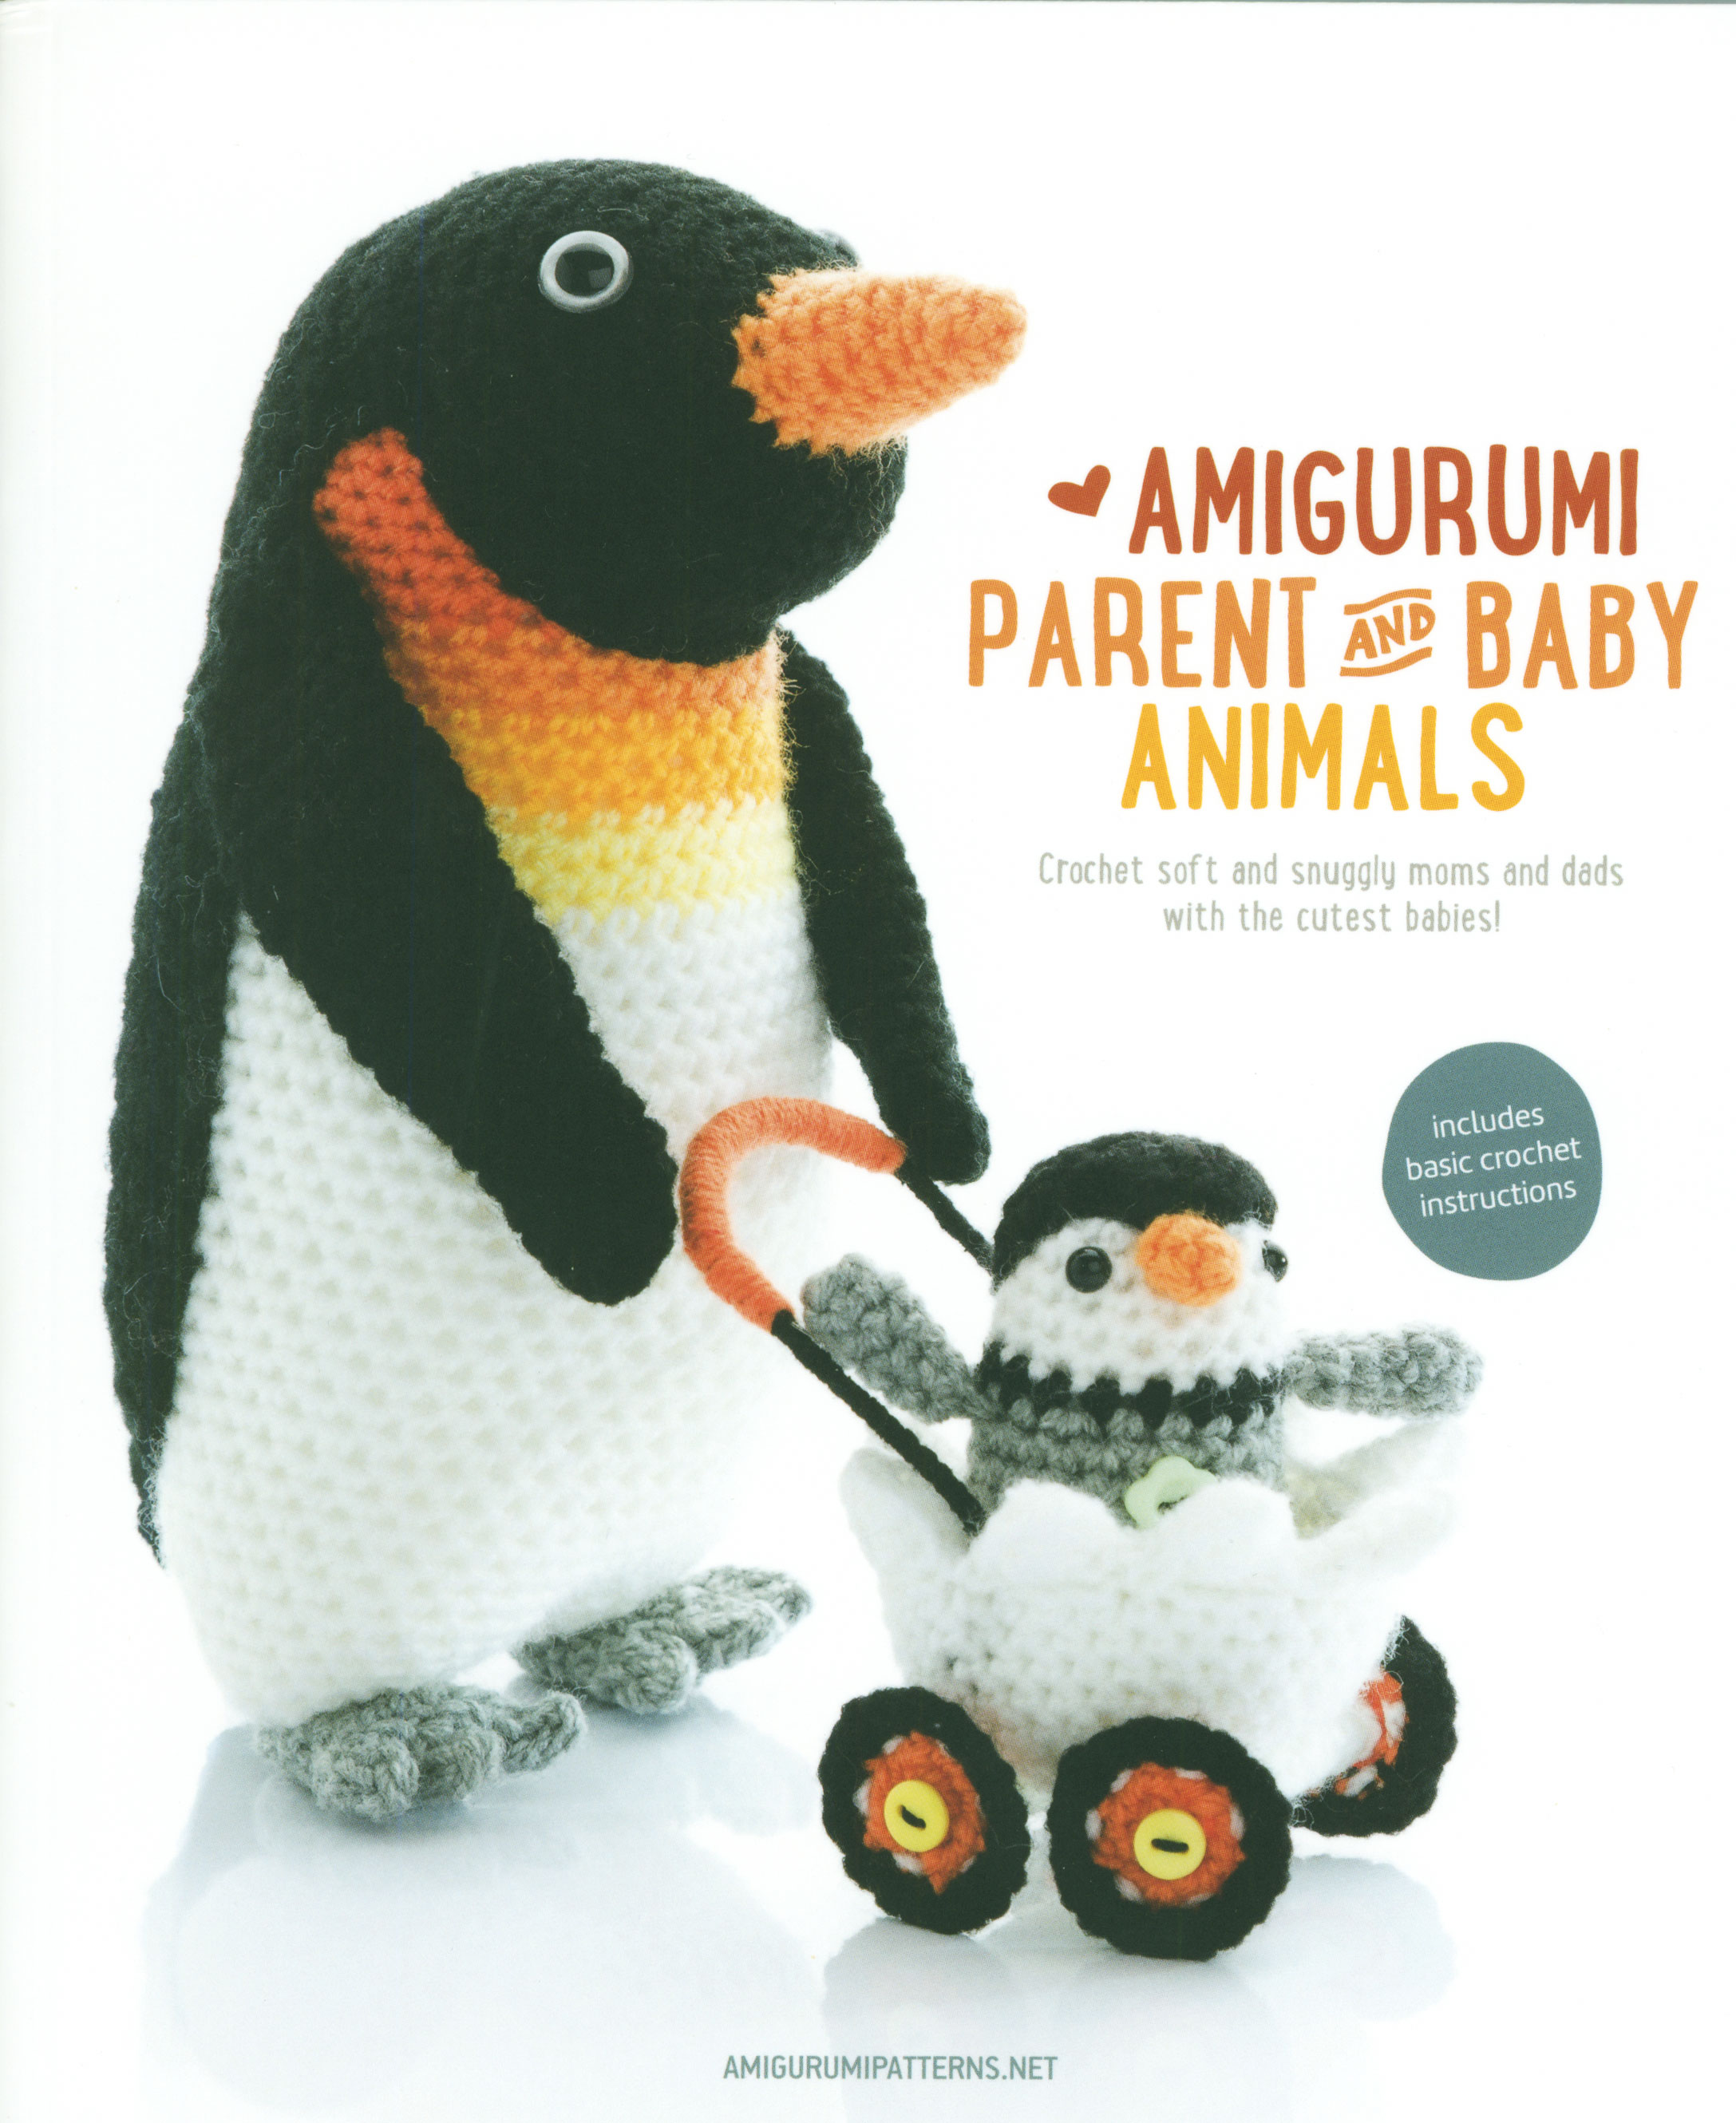 Amigurumi Parents and Baby Animals